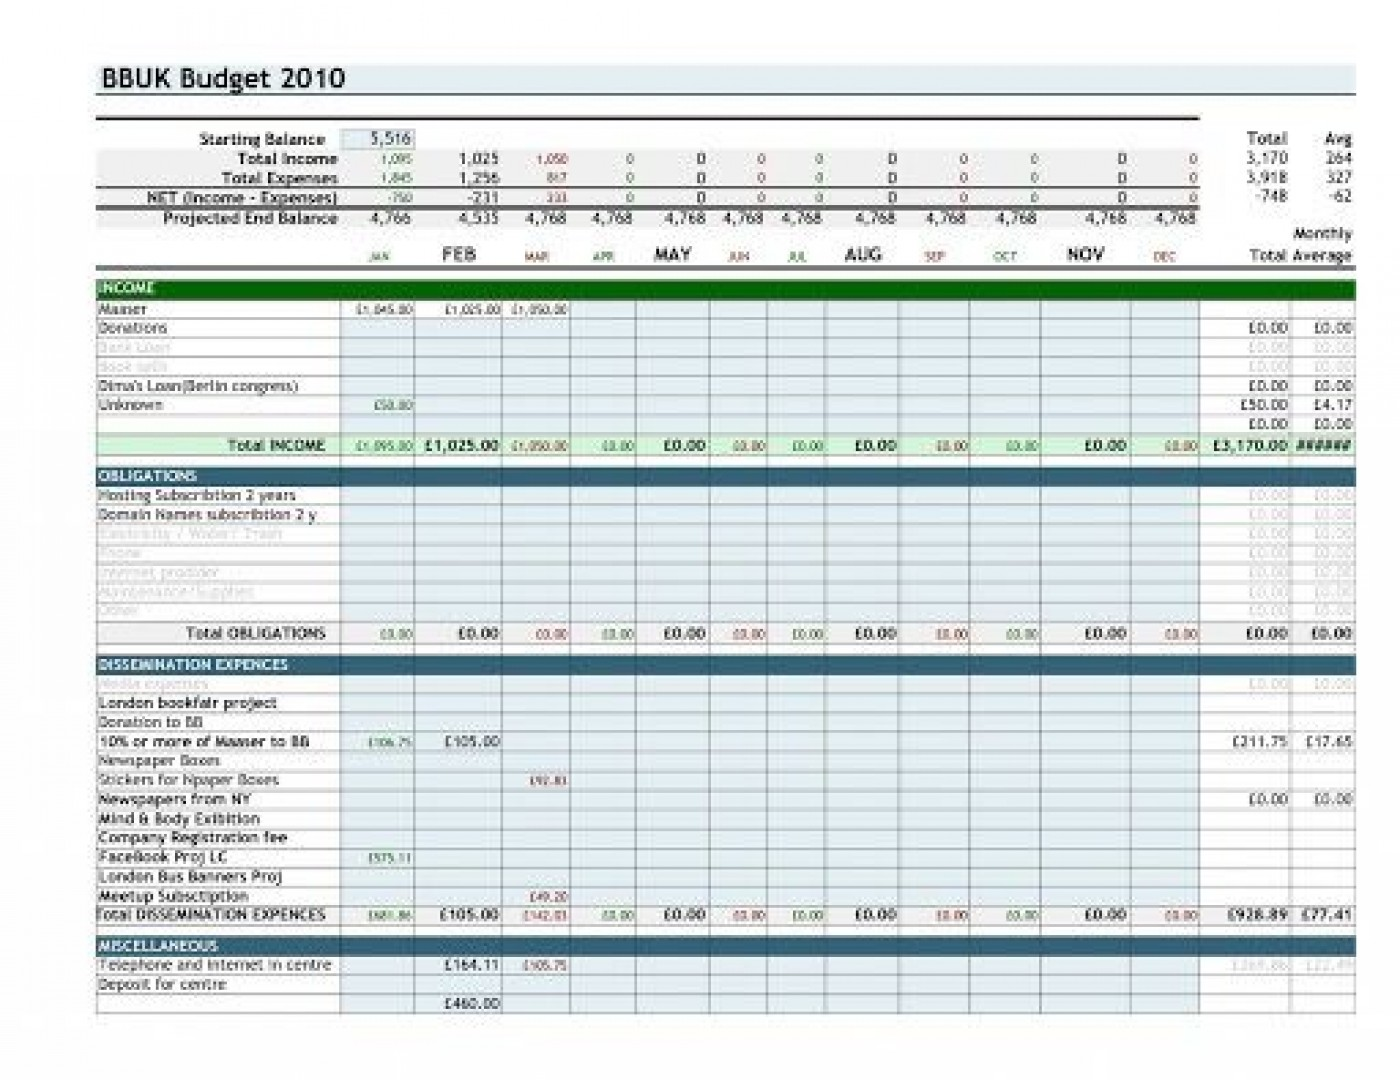 007 Stunning Personal Finance Template Excel High Resolution  Expense Free Uk Banking1400